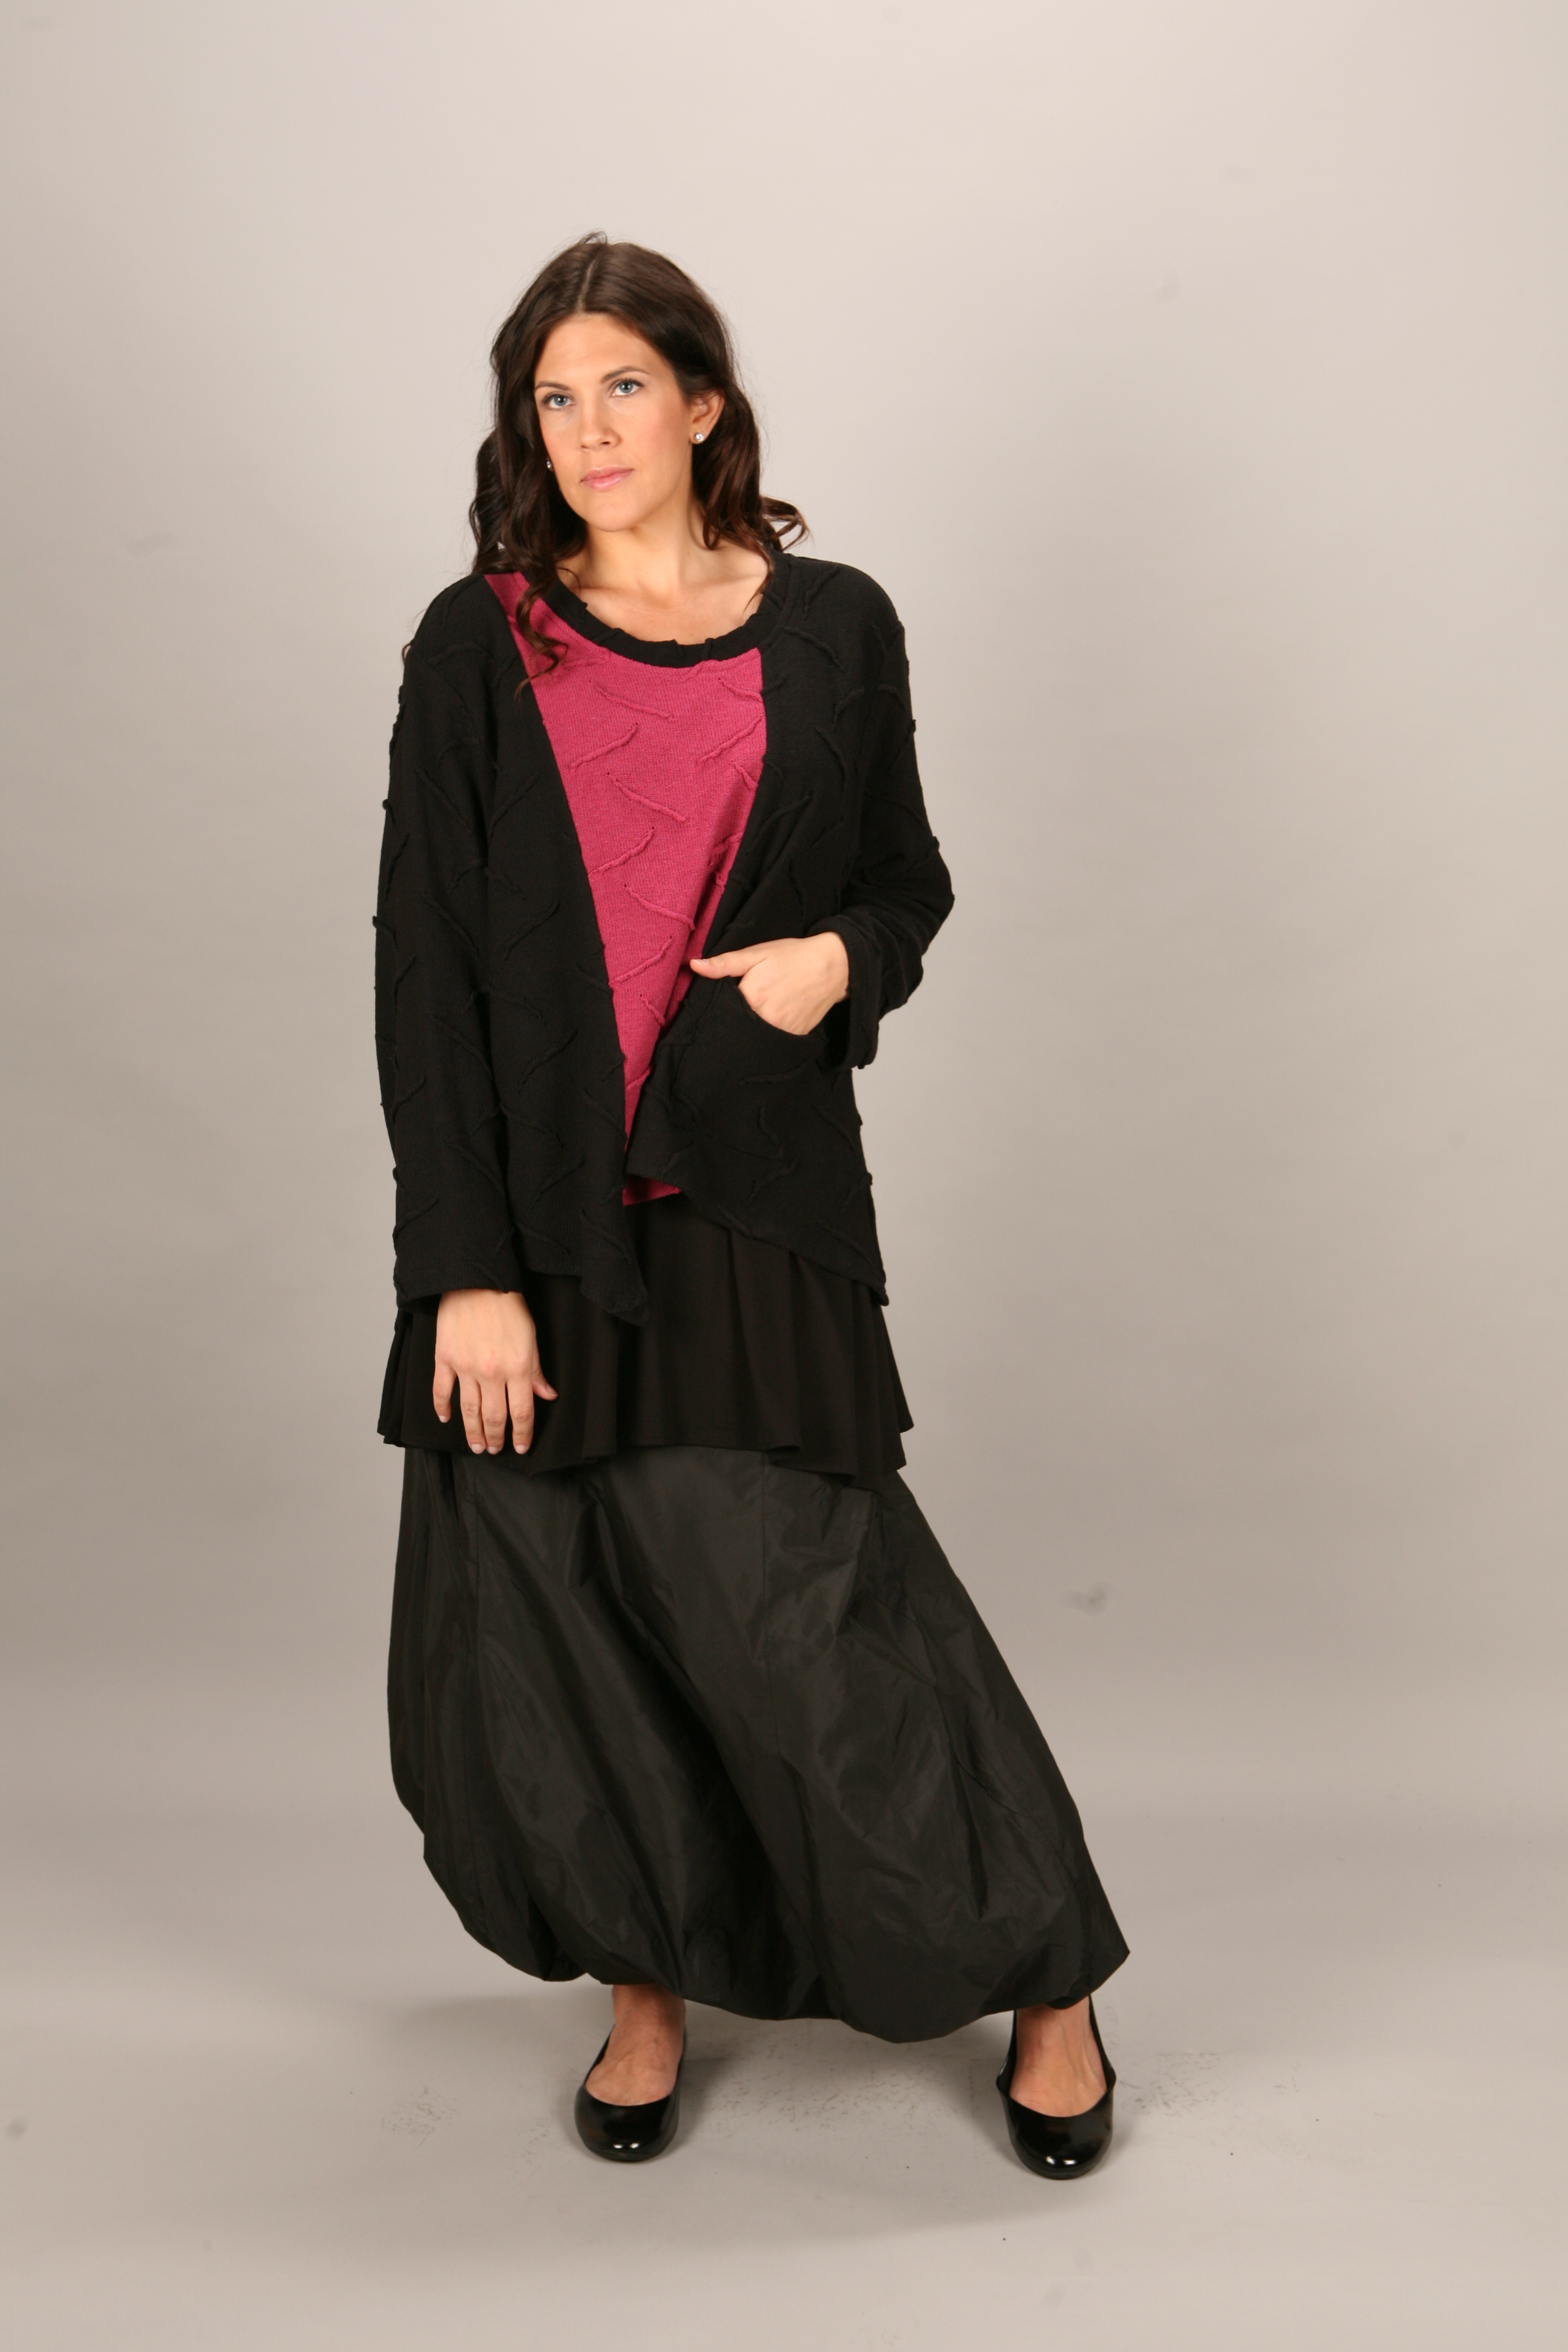 Transparente Designs European Plus Size Fashion